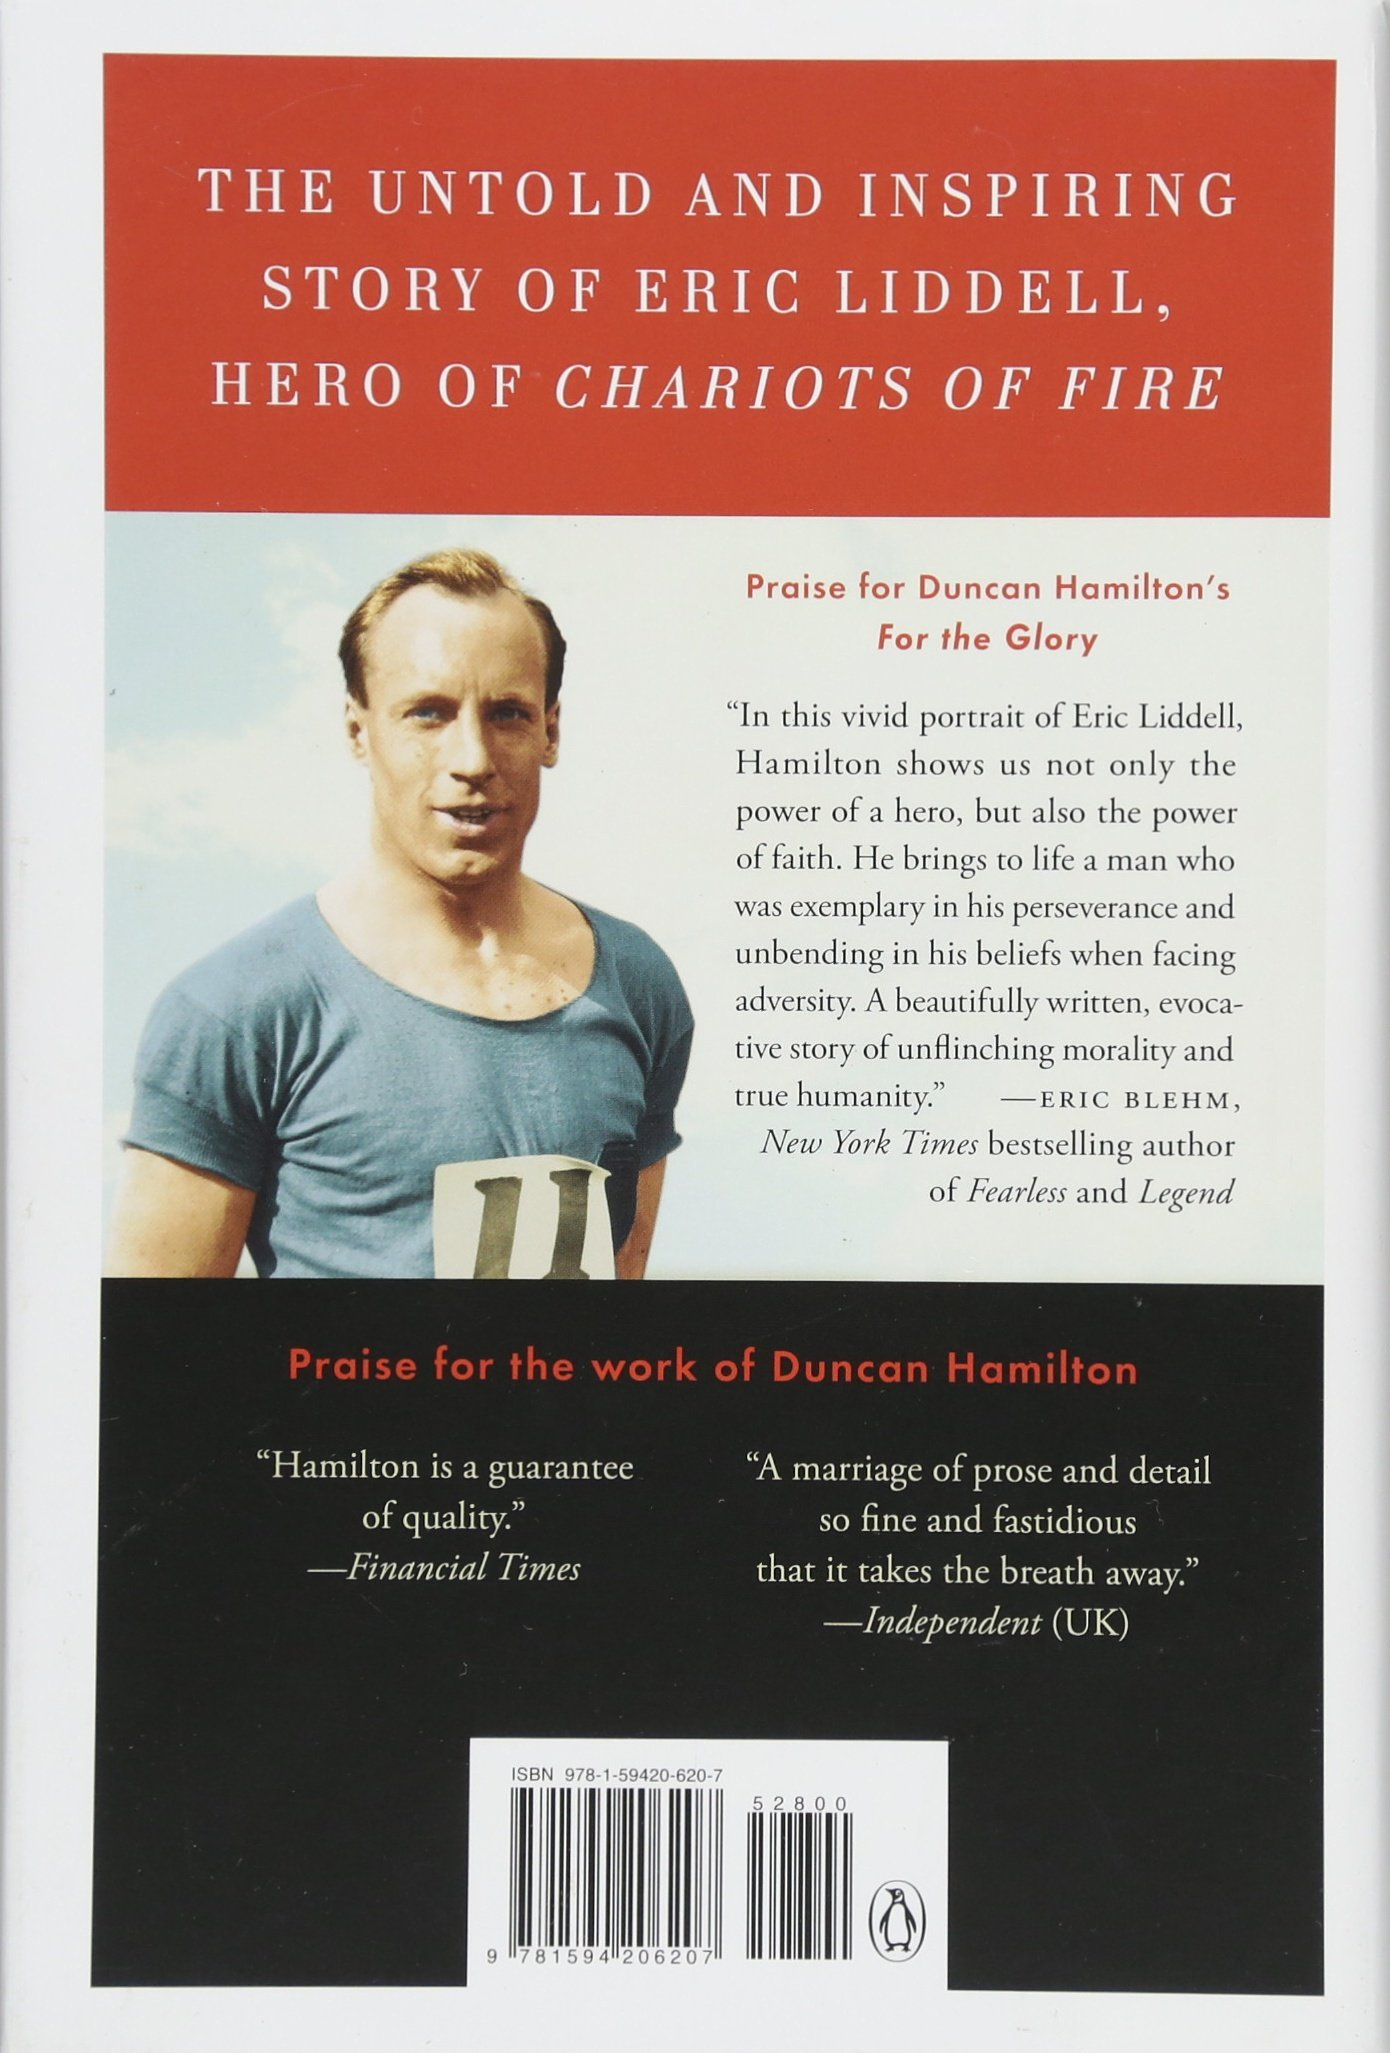 For the Glory: Eric Liddell's Journey from Olympic Champion to Modern Martyr:  Amazon.co.uk: Duncan Hamilton: 9781594206207: Books